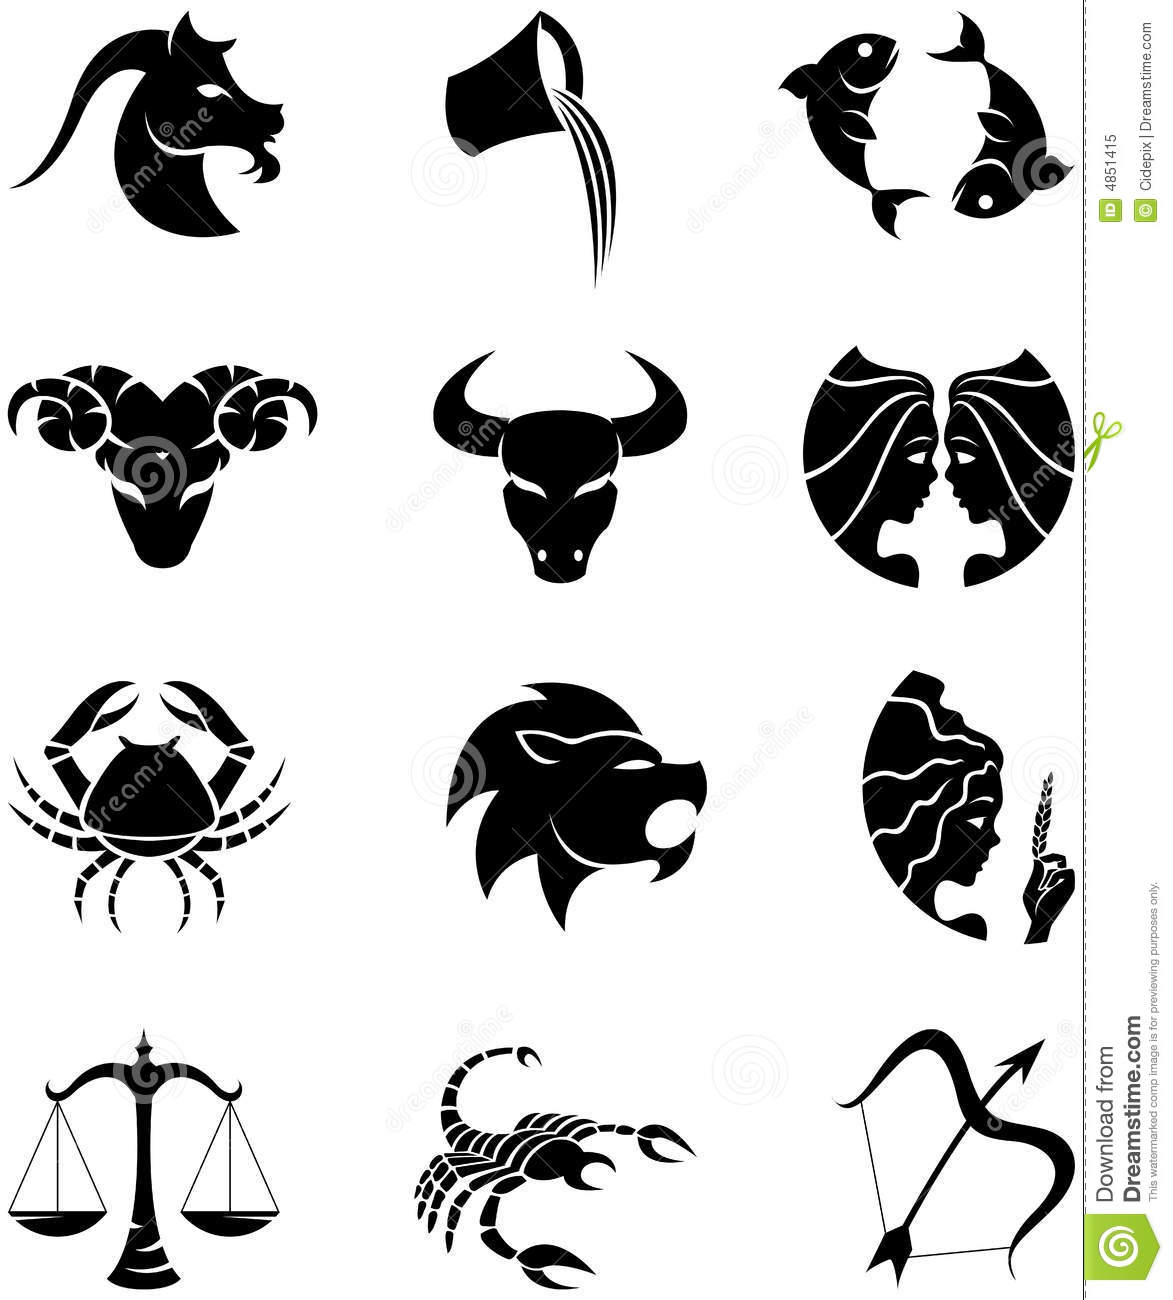 Zodiac Star Signs Royalty Free Stock Photo  Image 4851415. Bismuth Signs Of Stroke. Ada Signs. Watery Eyes Signs. Gemini Woman Signs. Basics Signs. Flash Character Signs. Please Call Signs. Numbness Signs Of Stroke